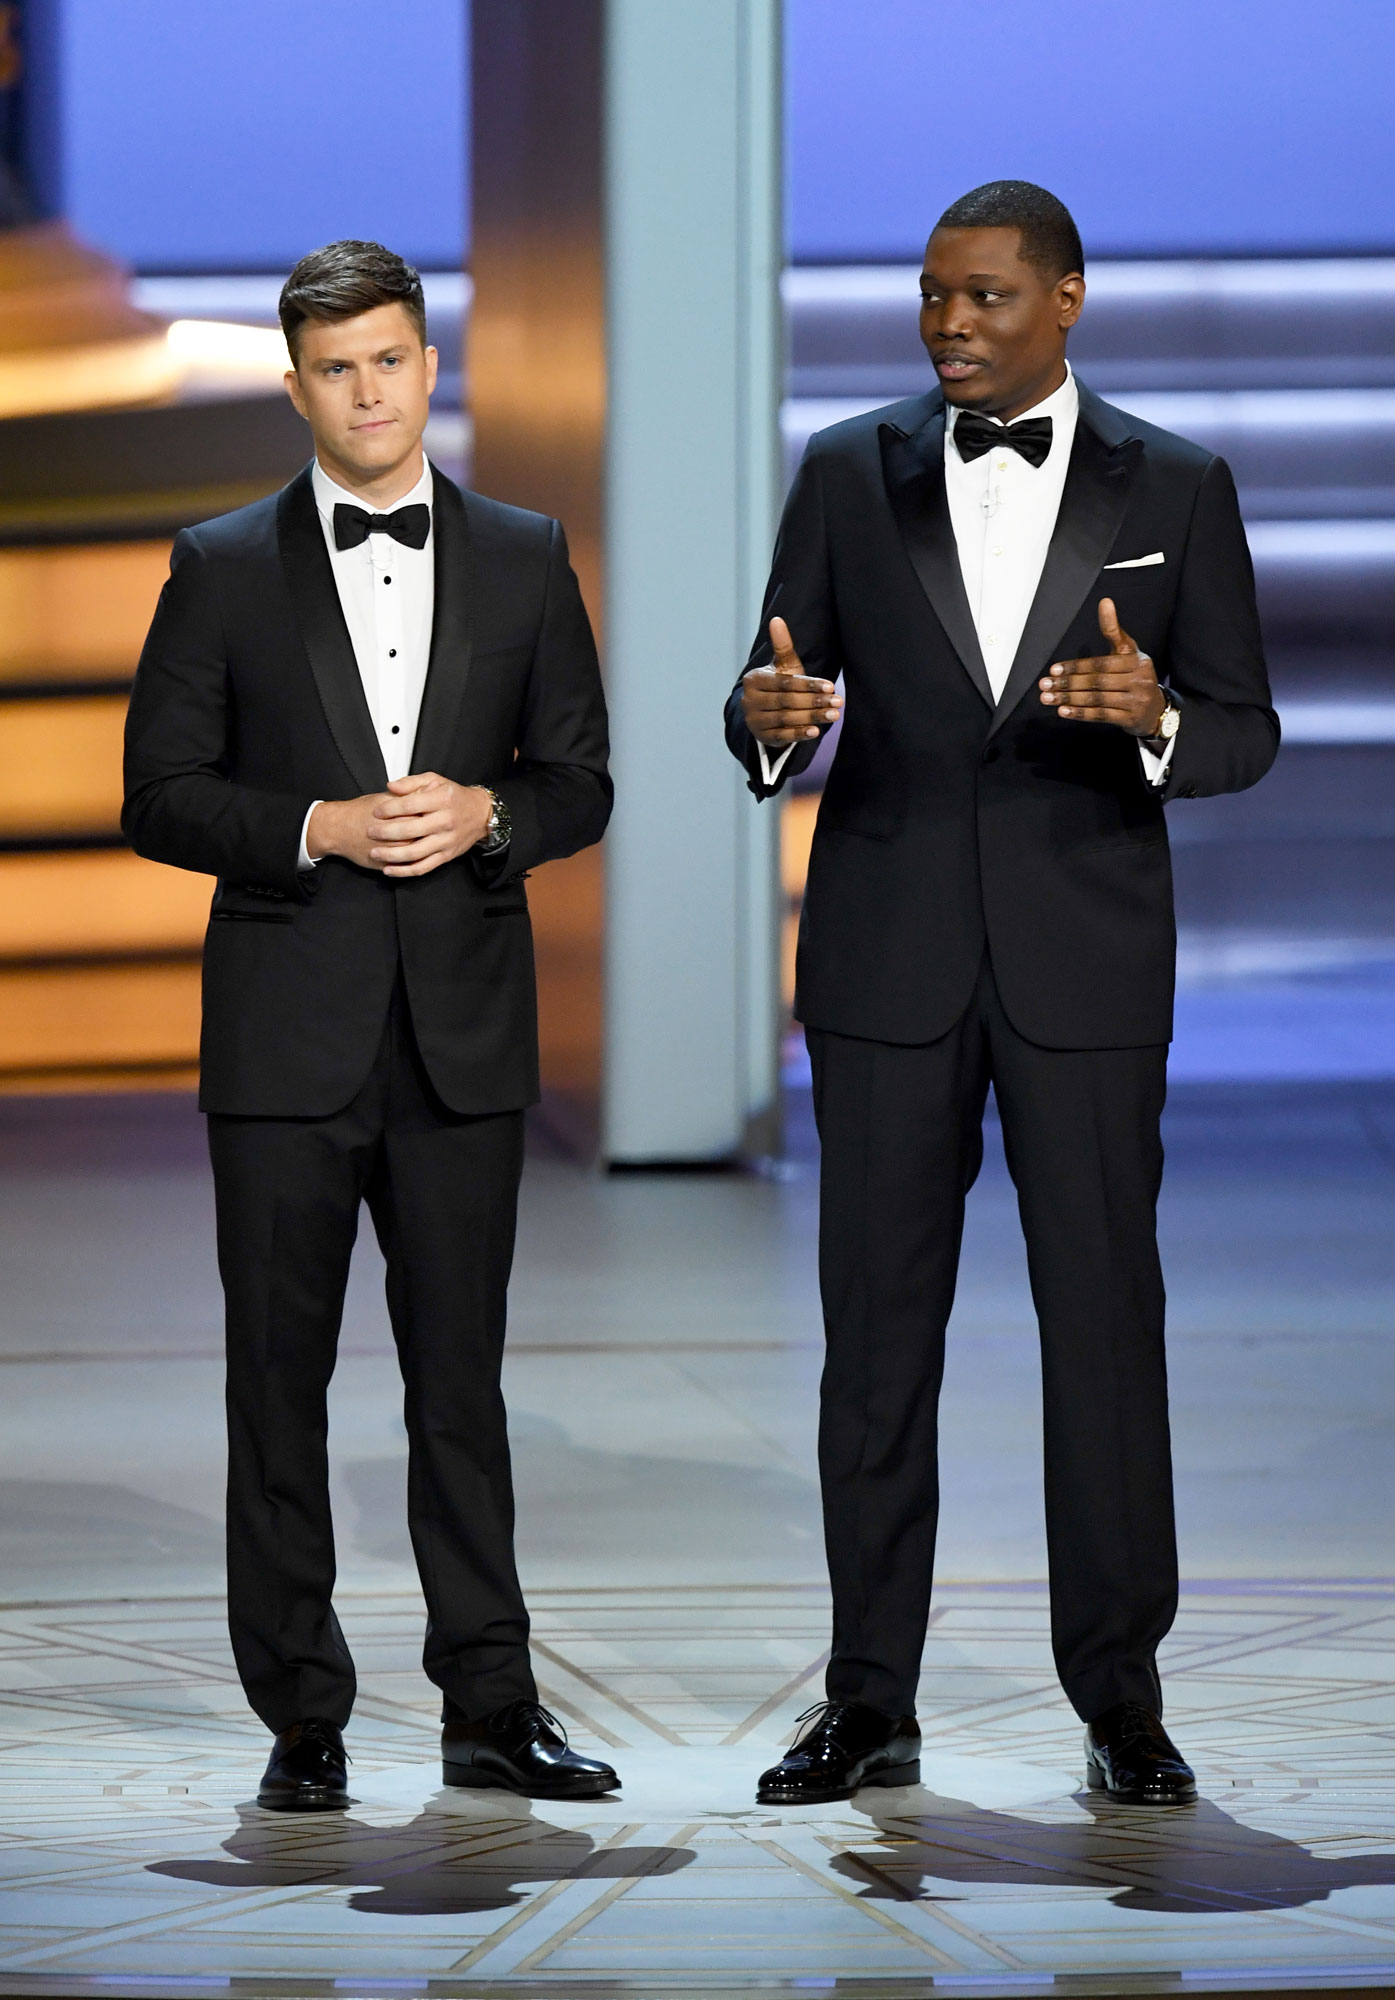 Watch Colin Jost And Michael Che Talk Roseanne During 2018 Emmys Opening All World Report